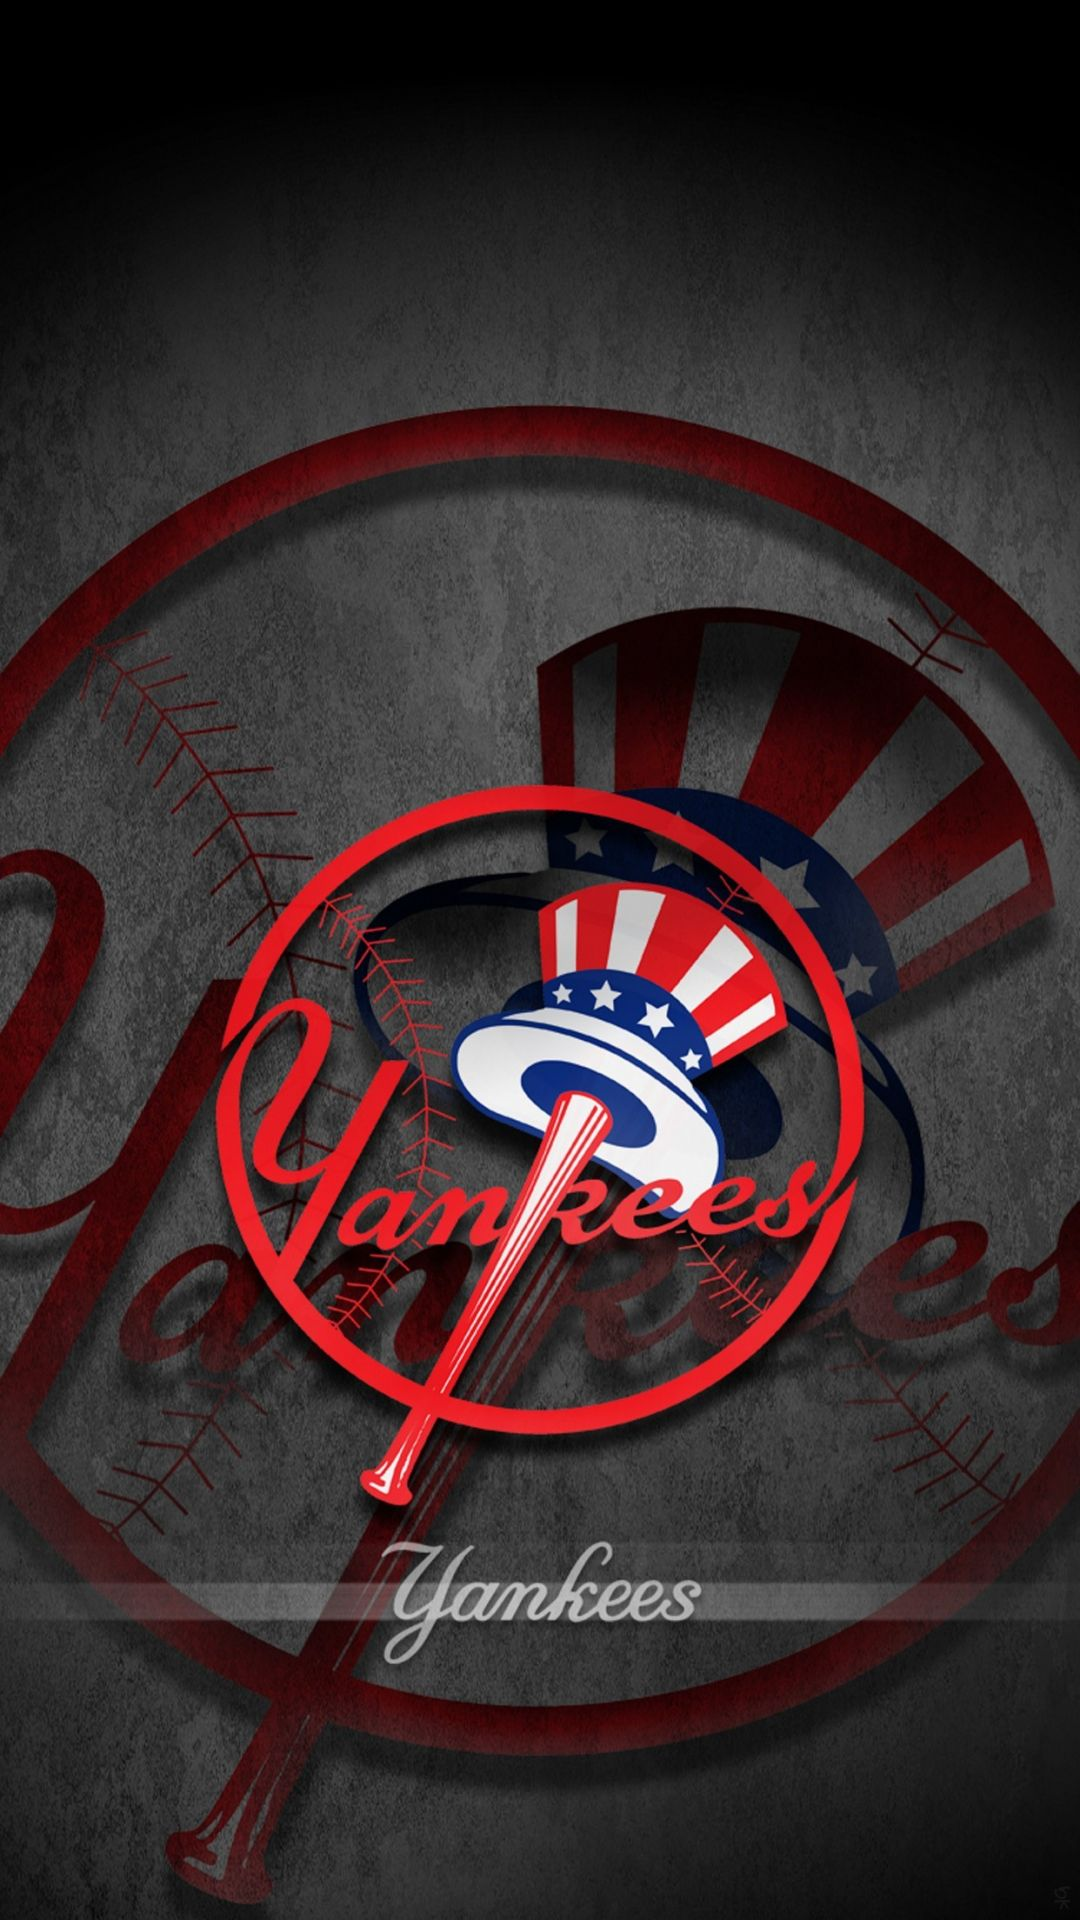 65 New York Yankees Iphone Android Iphone Desktop Hd Backgrounds Wallpapers 1080p 4k 1242x2208 2020